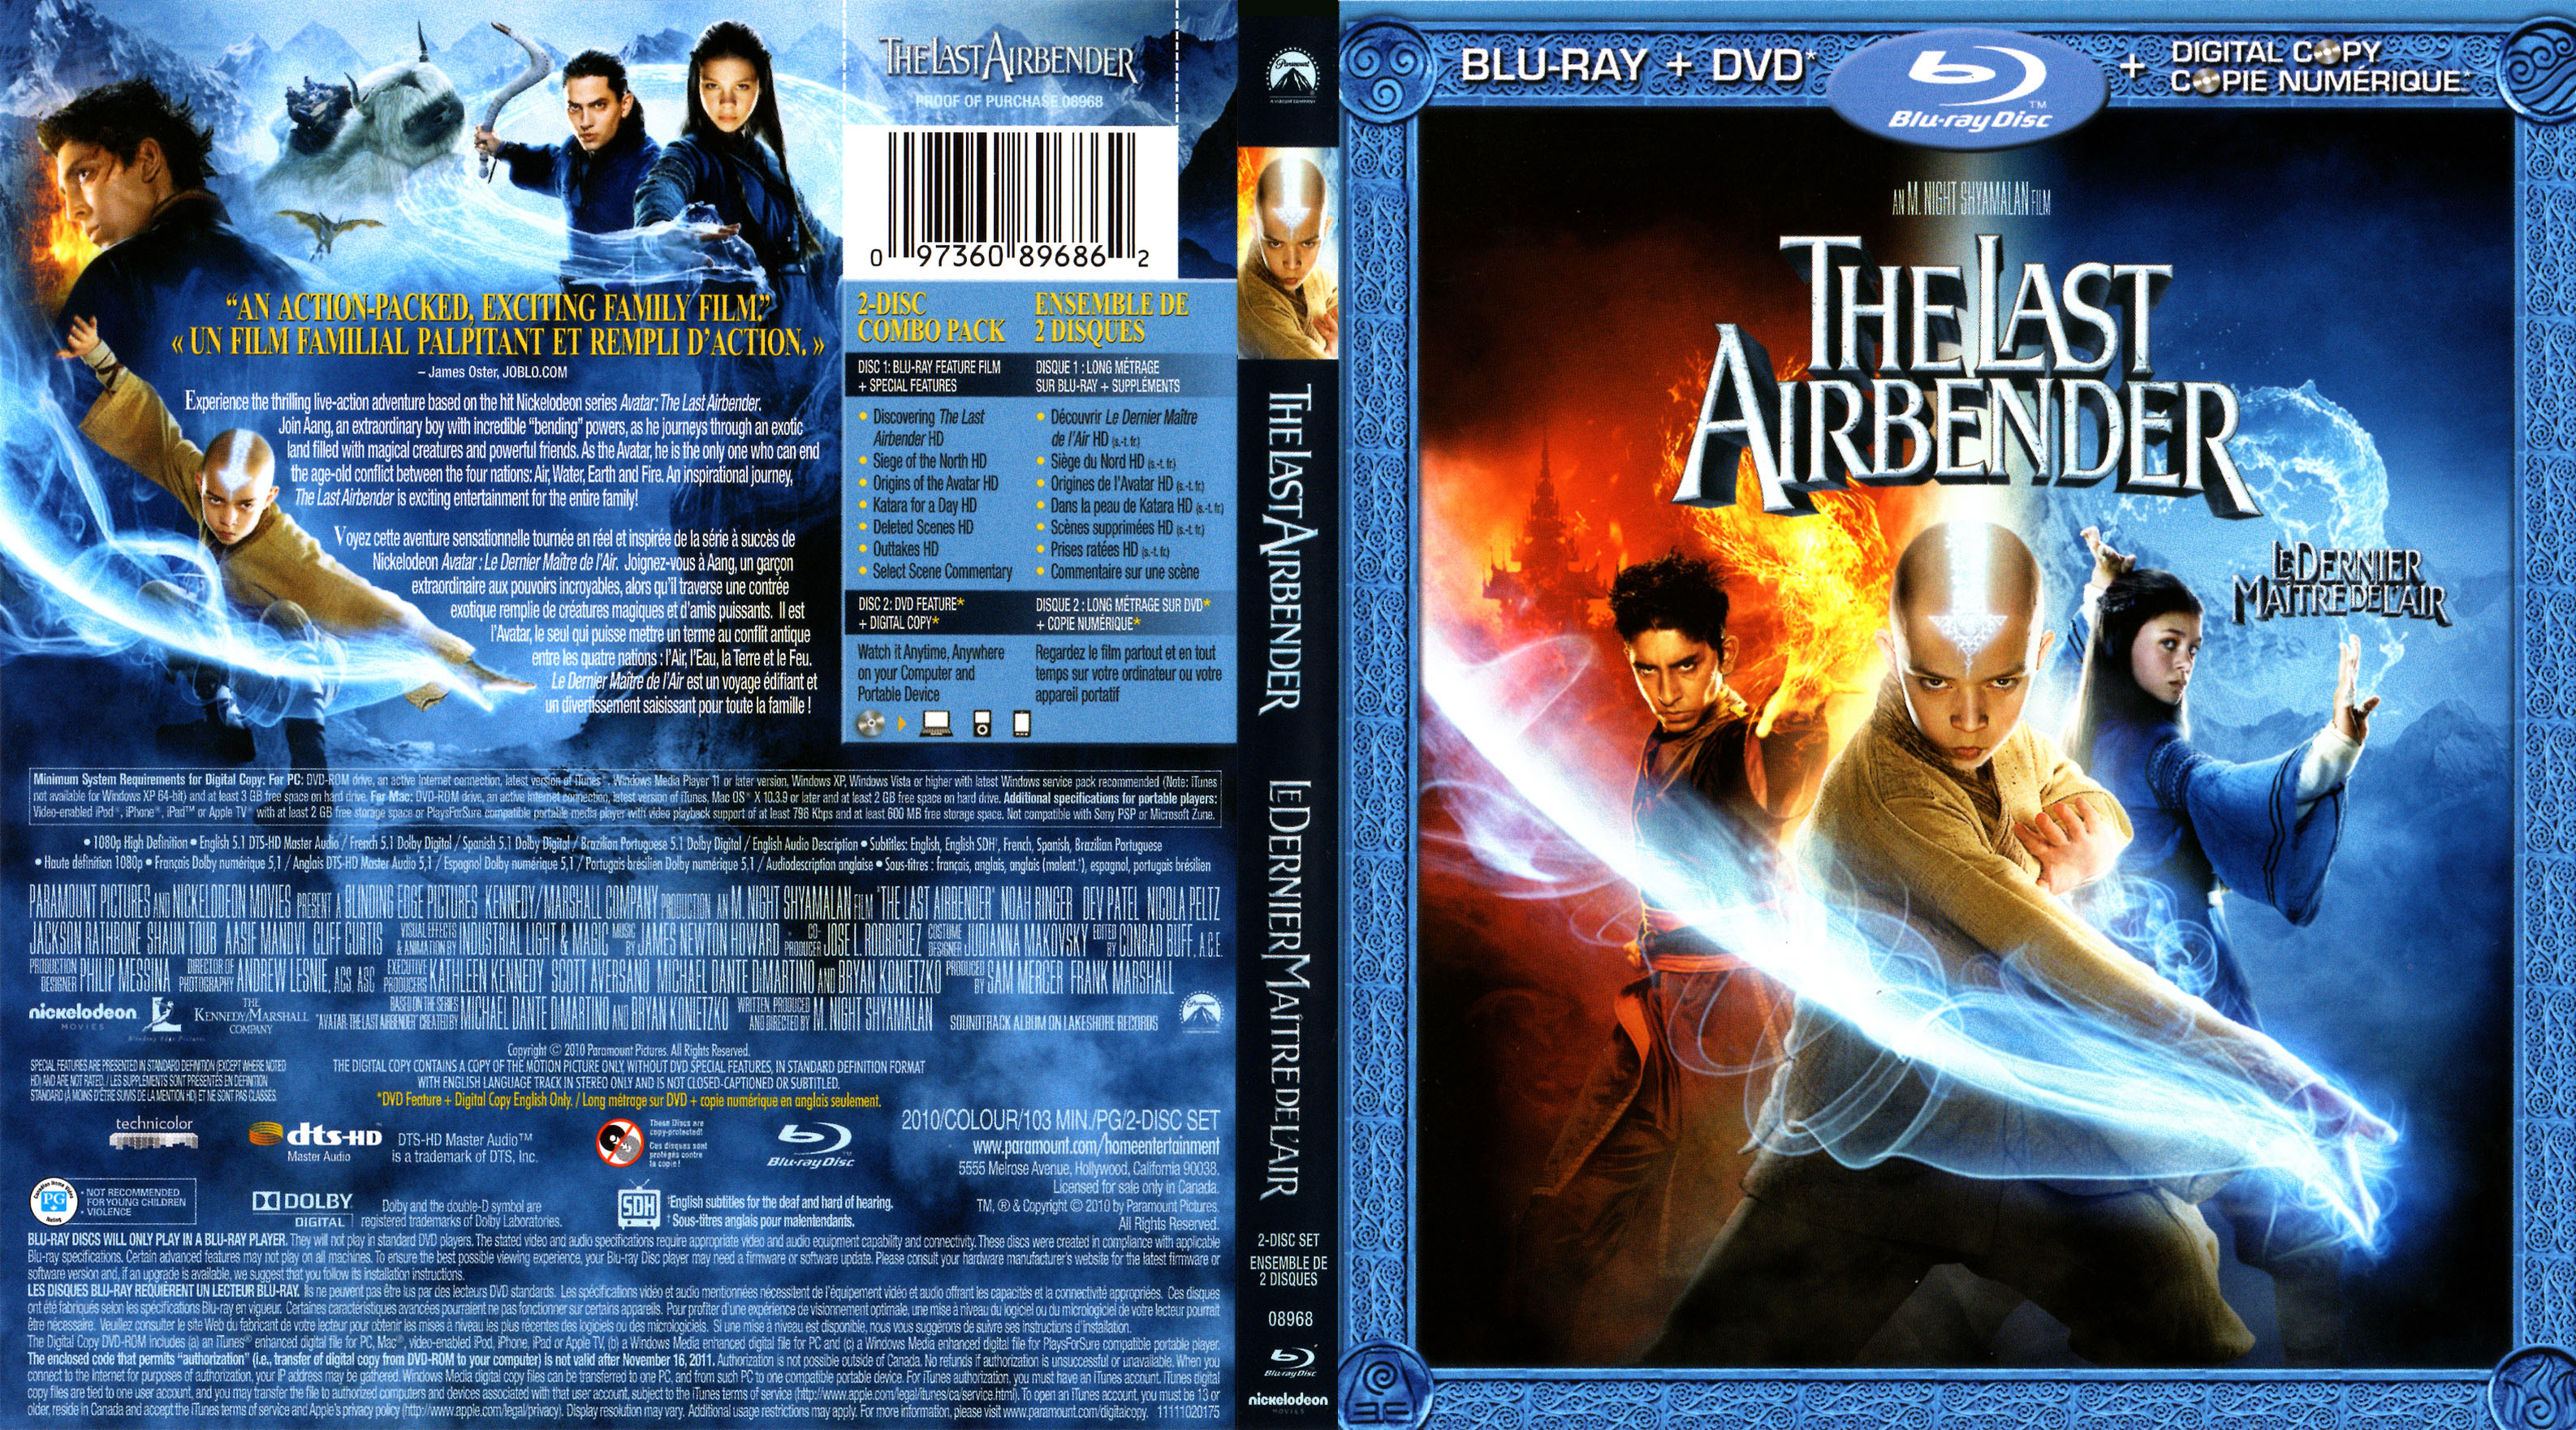 image the last airbender dvd blu ray cover art jpg. Black Bedroom Furniture Sets. Home Design Ideas